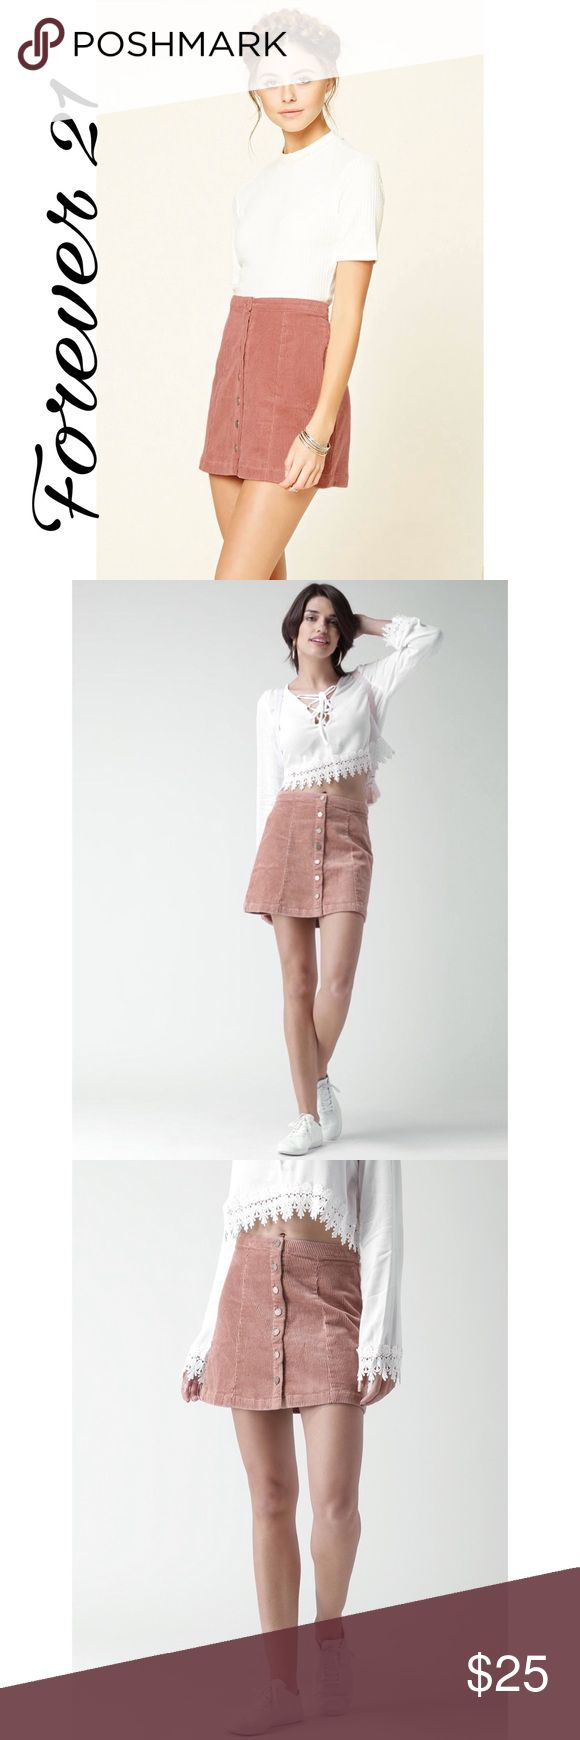 ✨ Women's Pink Corduroy Mini Skirt✨ ✨98% Cotton, 2% elastane. Machine wash cold. Dusty pink knitted corduroy A-line mini skirt, has a waistband with a full button closure on the front.✨ Forever 21 Skirts Mini